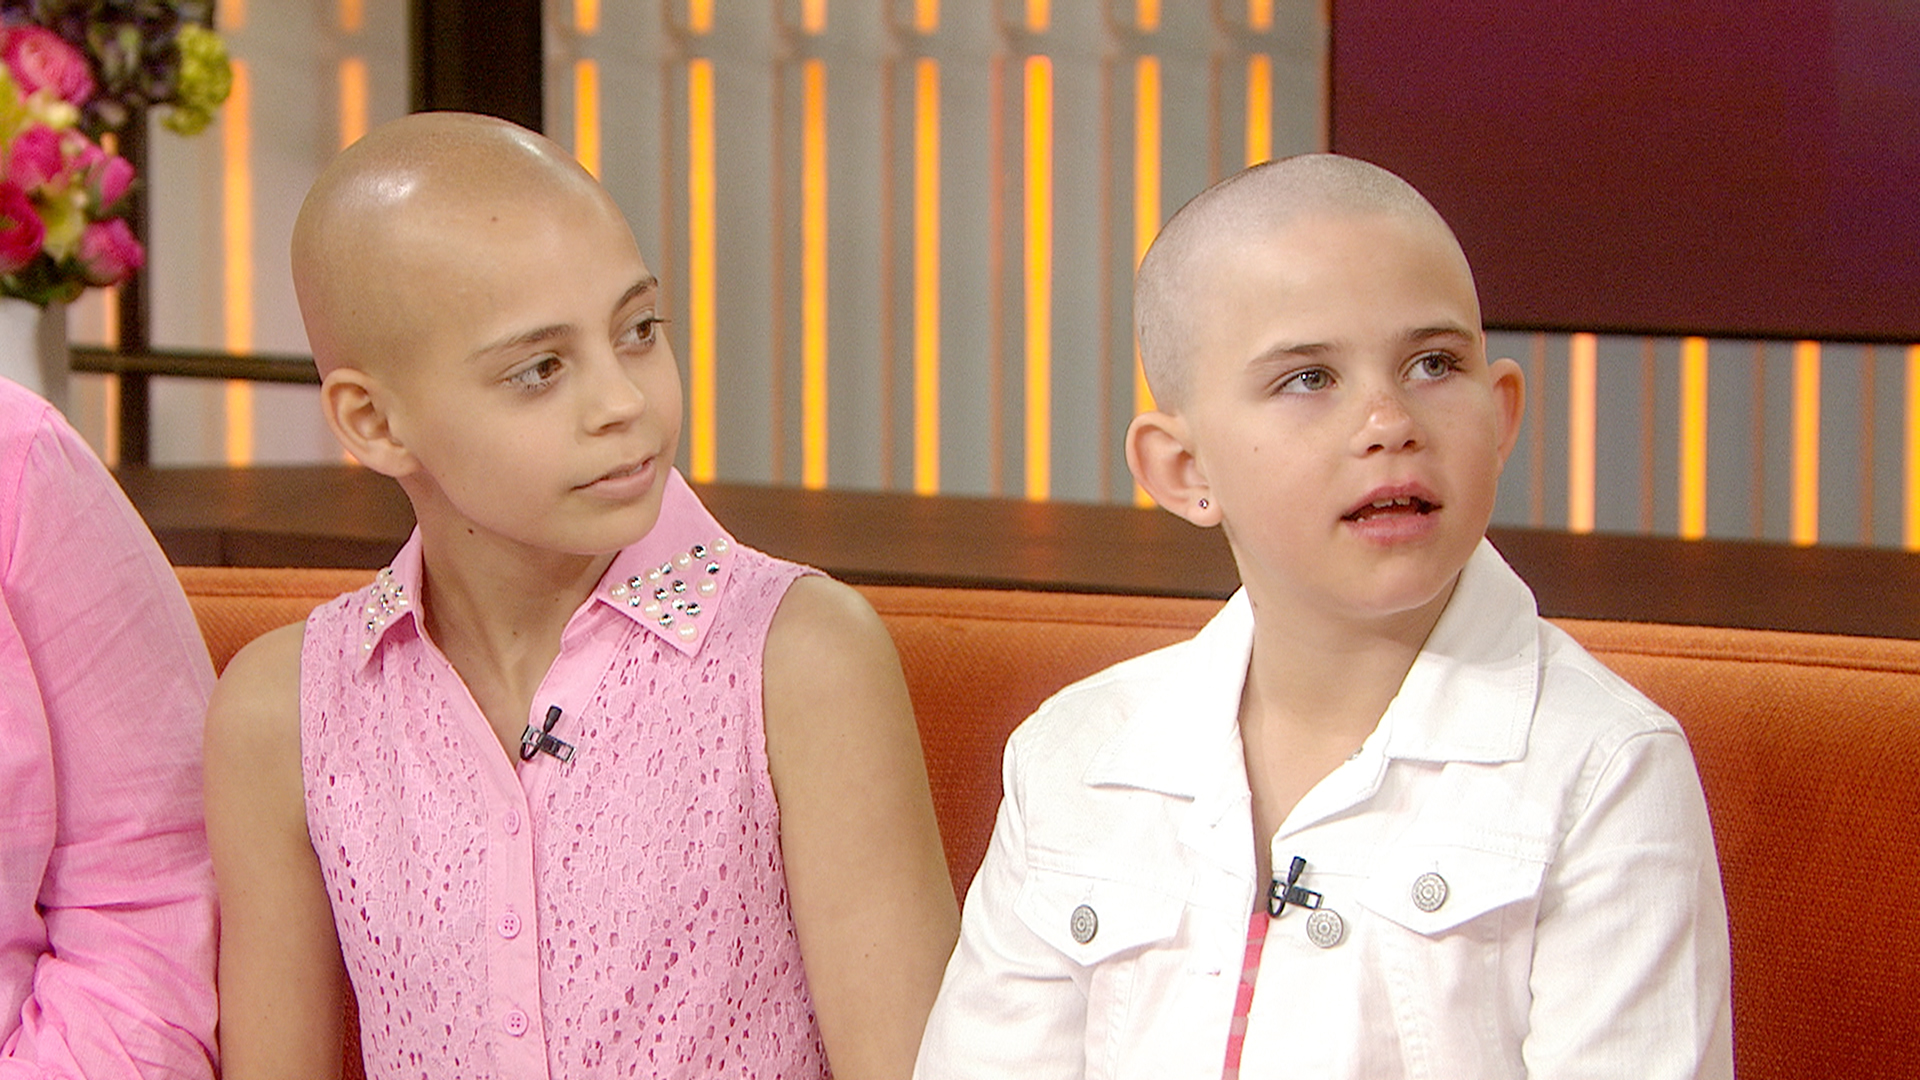 This 9-Year-Old Girl Shaved Her Head to Support Mom During Cancer Battle